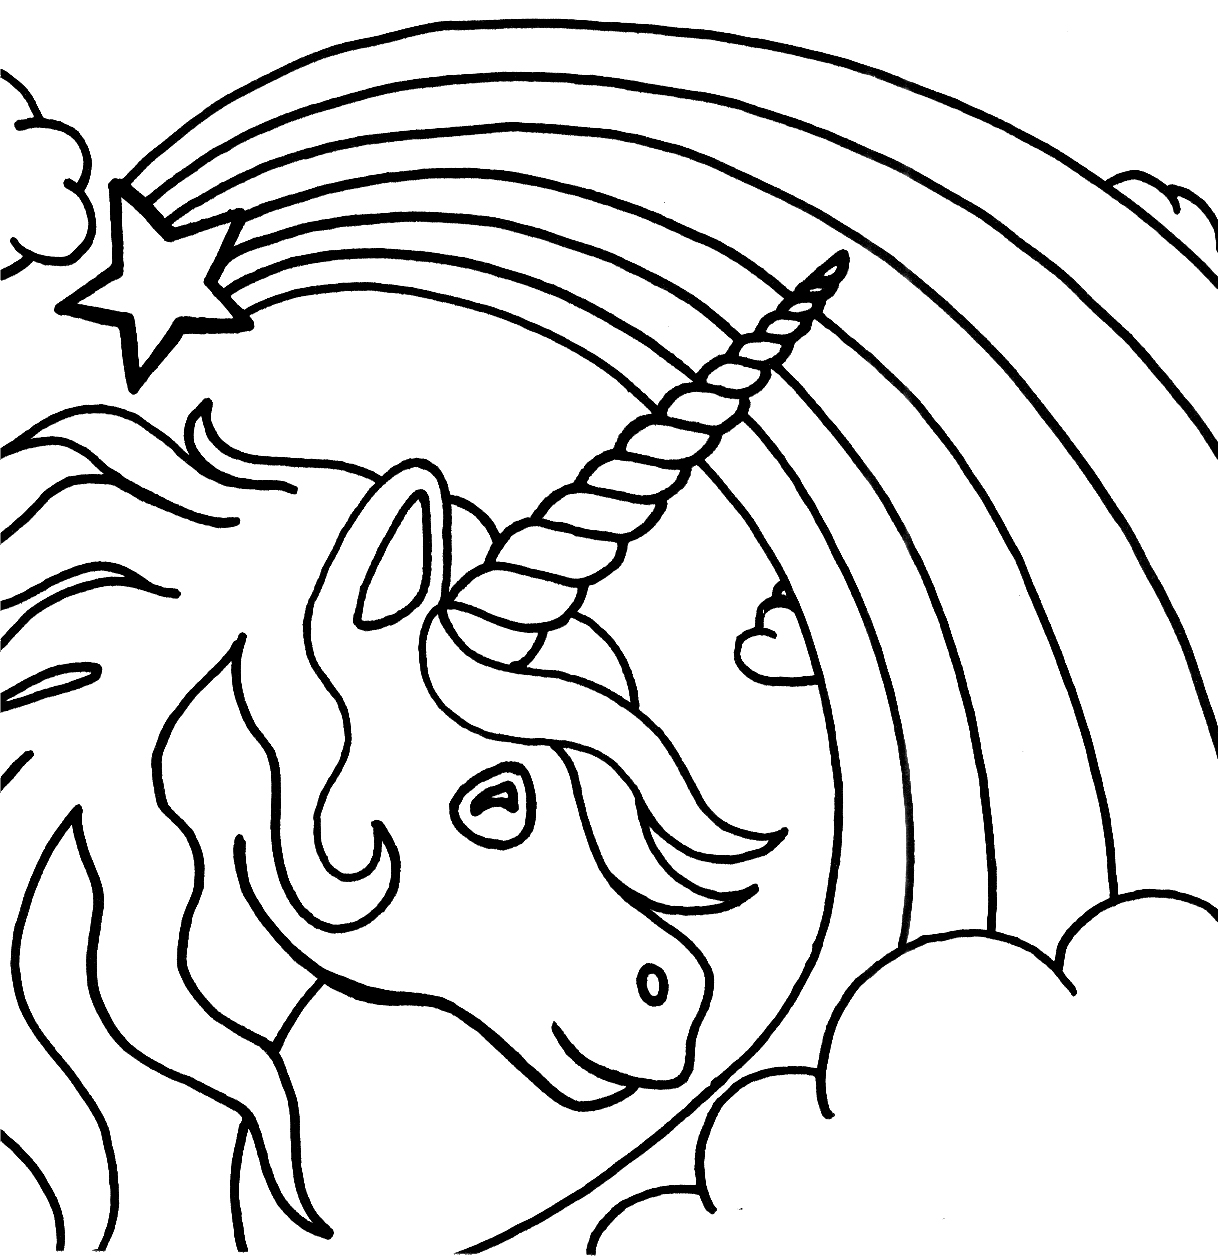 Free printable coloring pages unicorns - Unicorn Coloring Pages For Kids